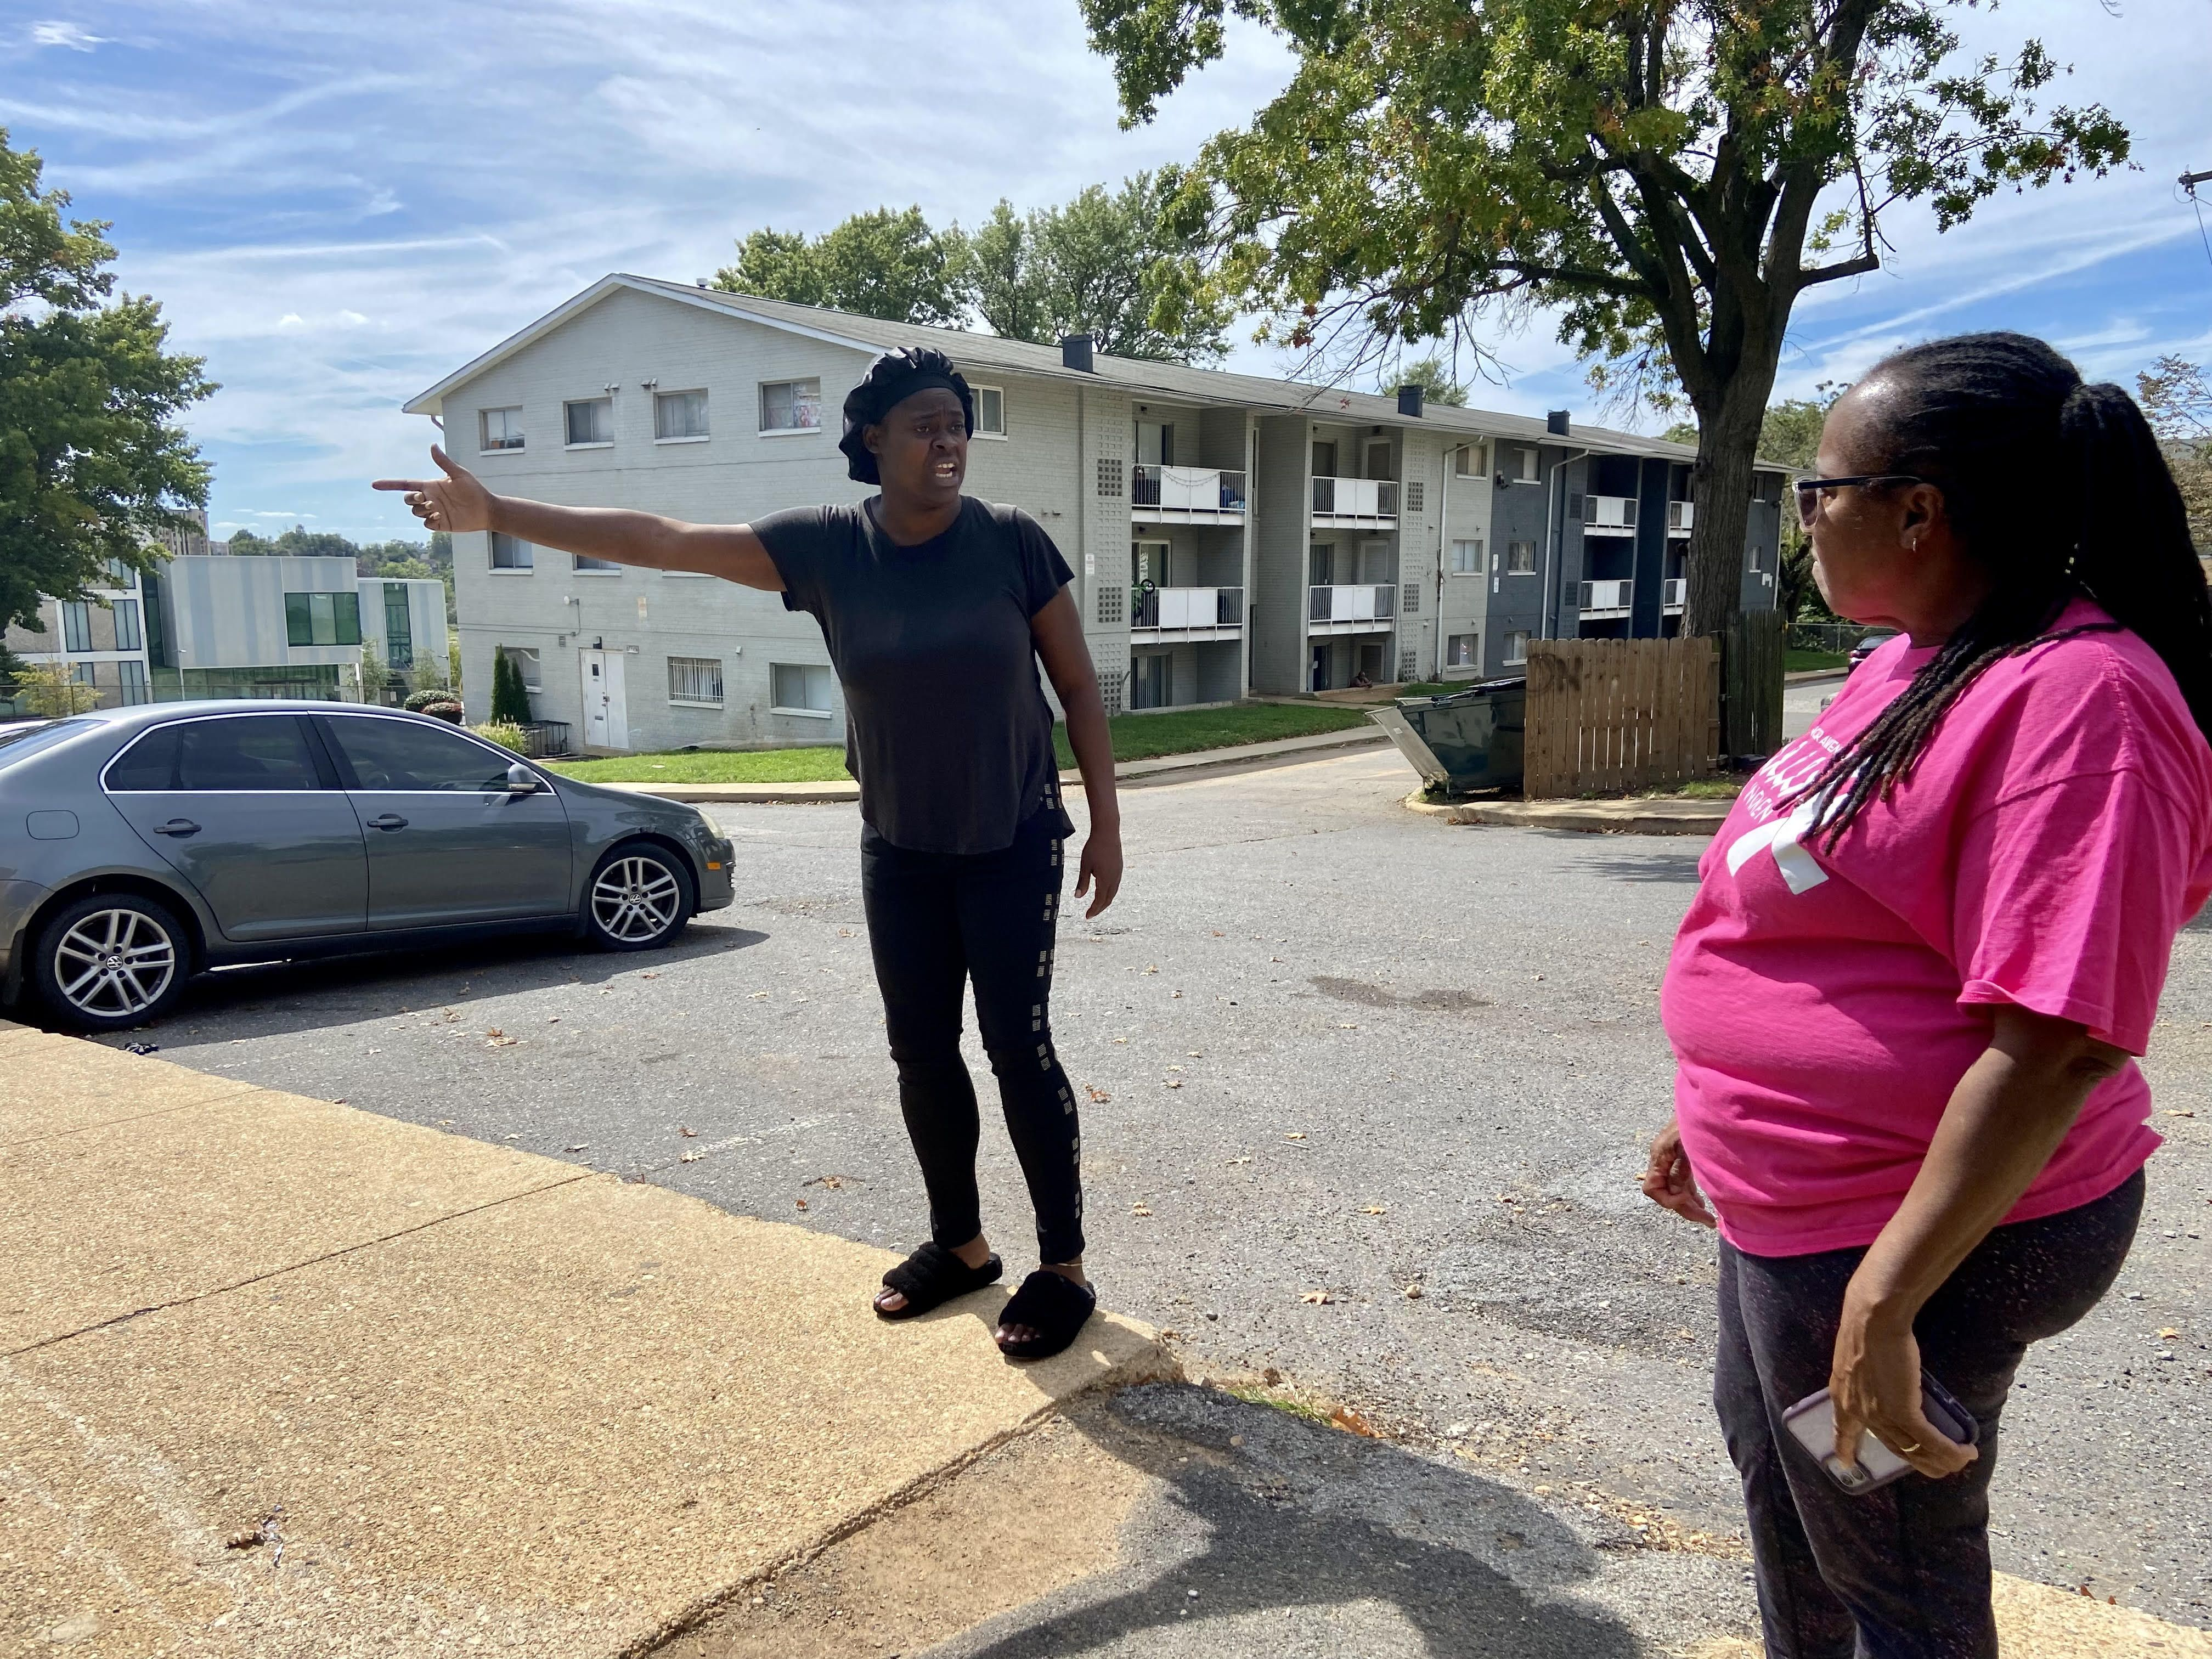 Two residents of Oak Hill Apartments discuss conditions at their complex in the courtyard.